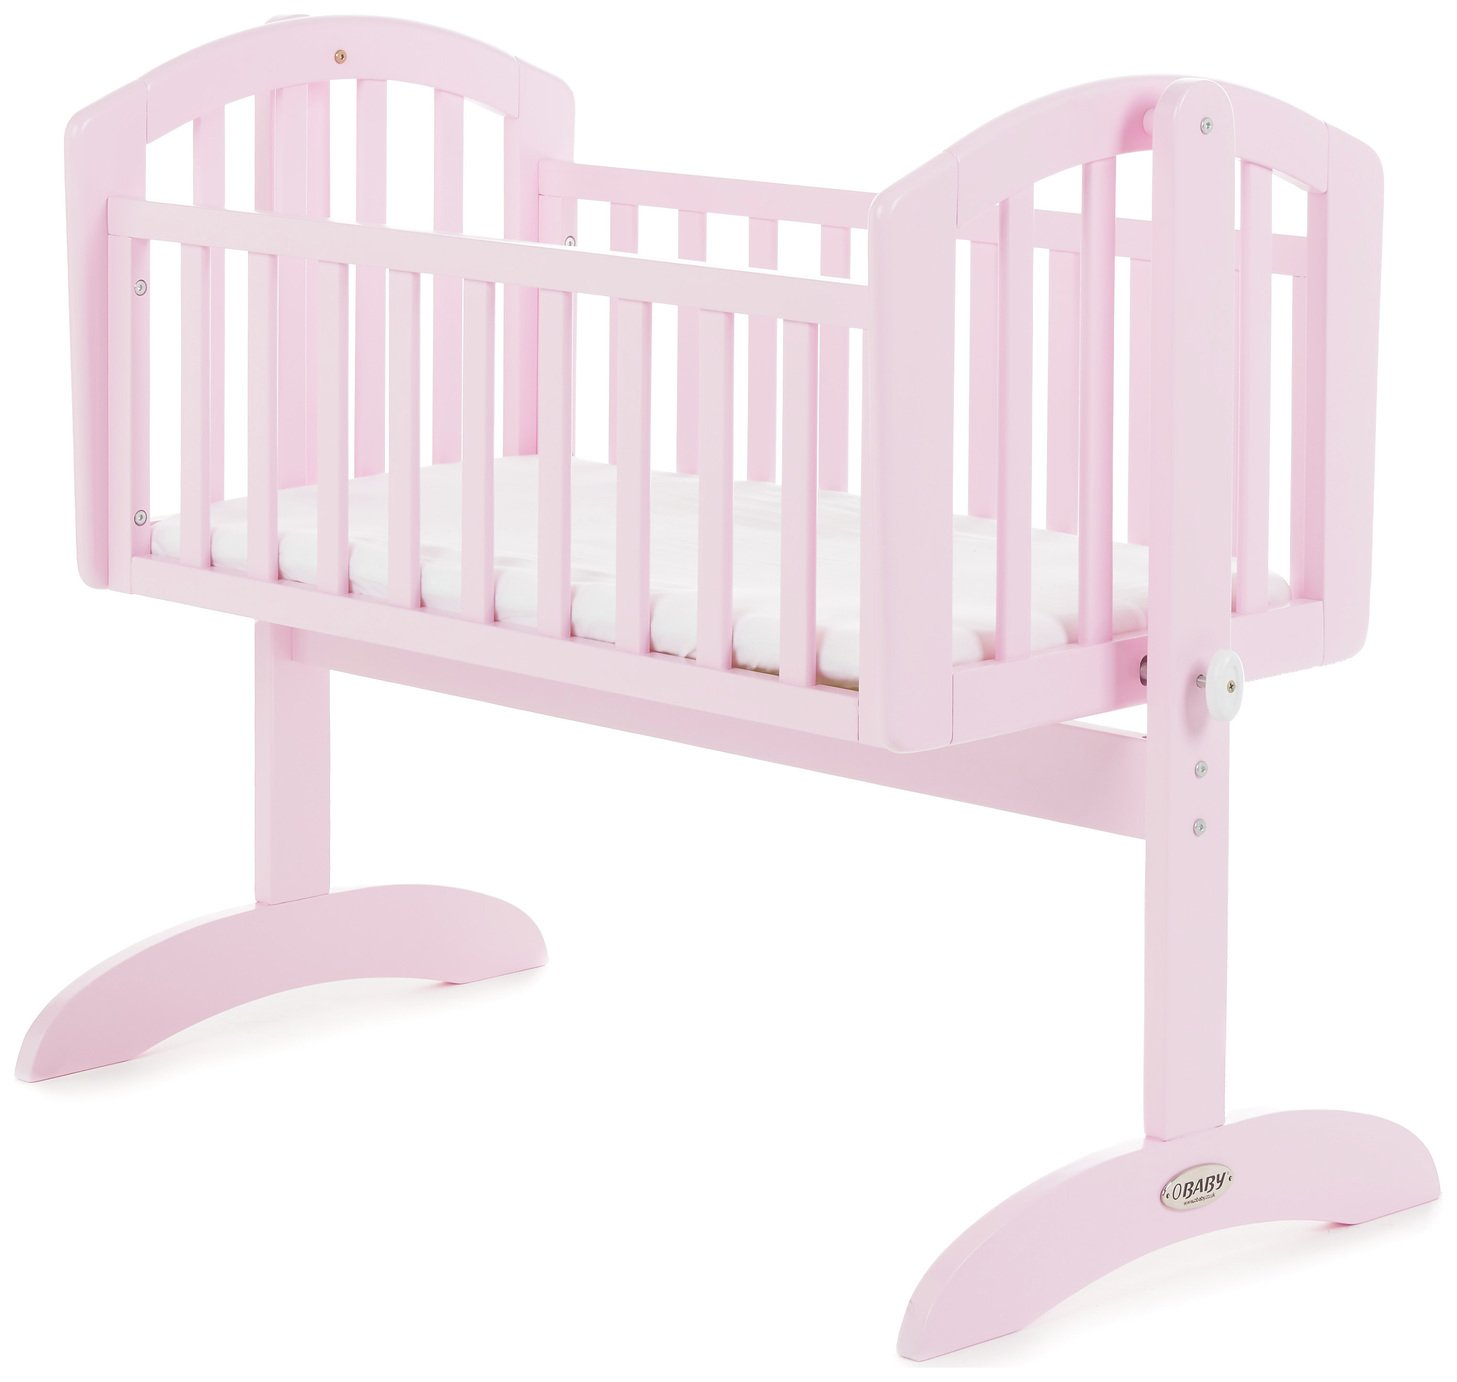 Obaby Sophie Swinging Crib & Mattress - Eton Mess